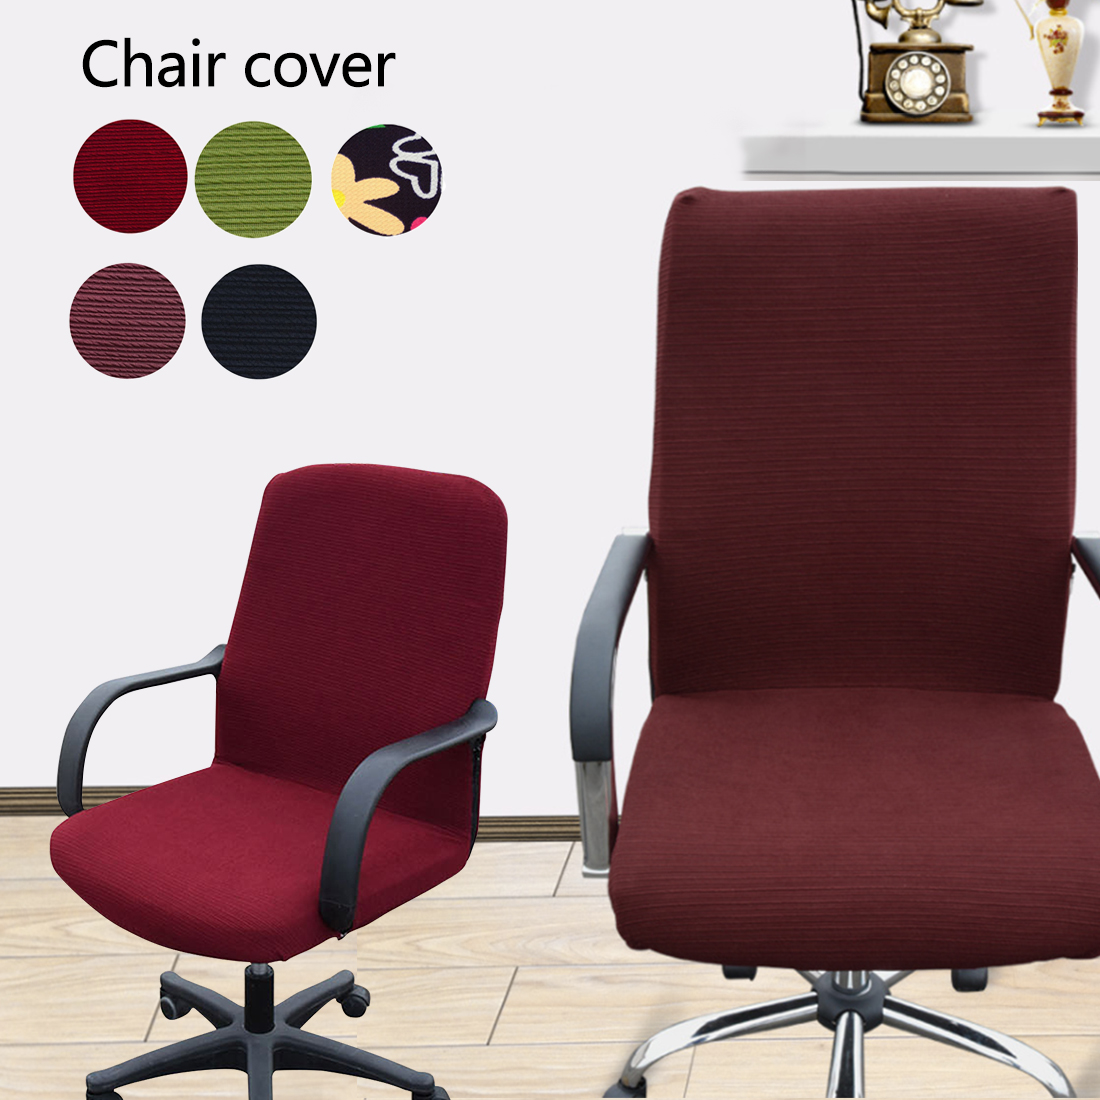 Removable Stretch Swivel L M S Xs Computer Chair Covers Office Armchair Comfortable Seat Slipcovers In Cover From Home Garden On